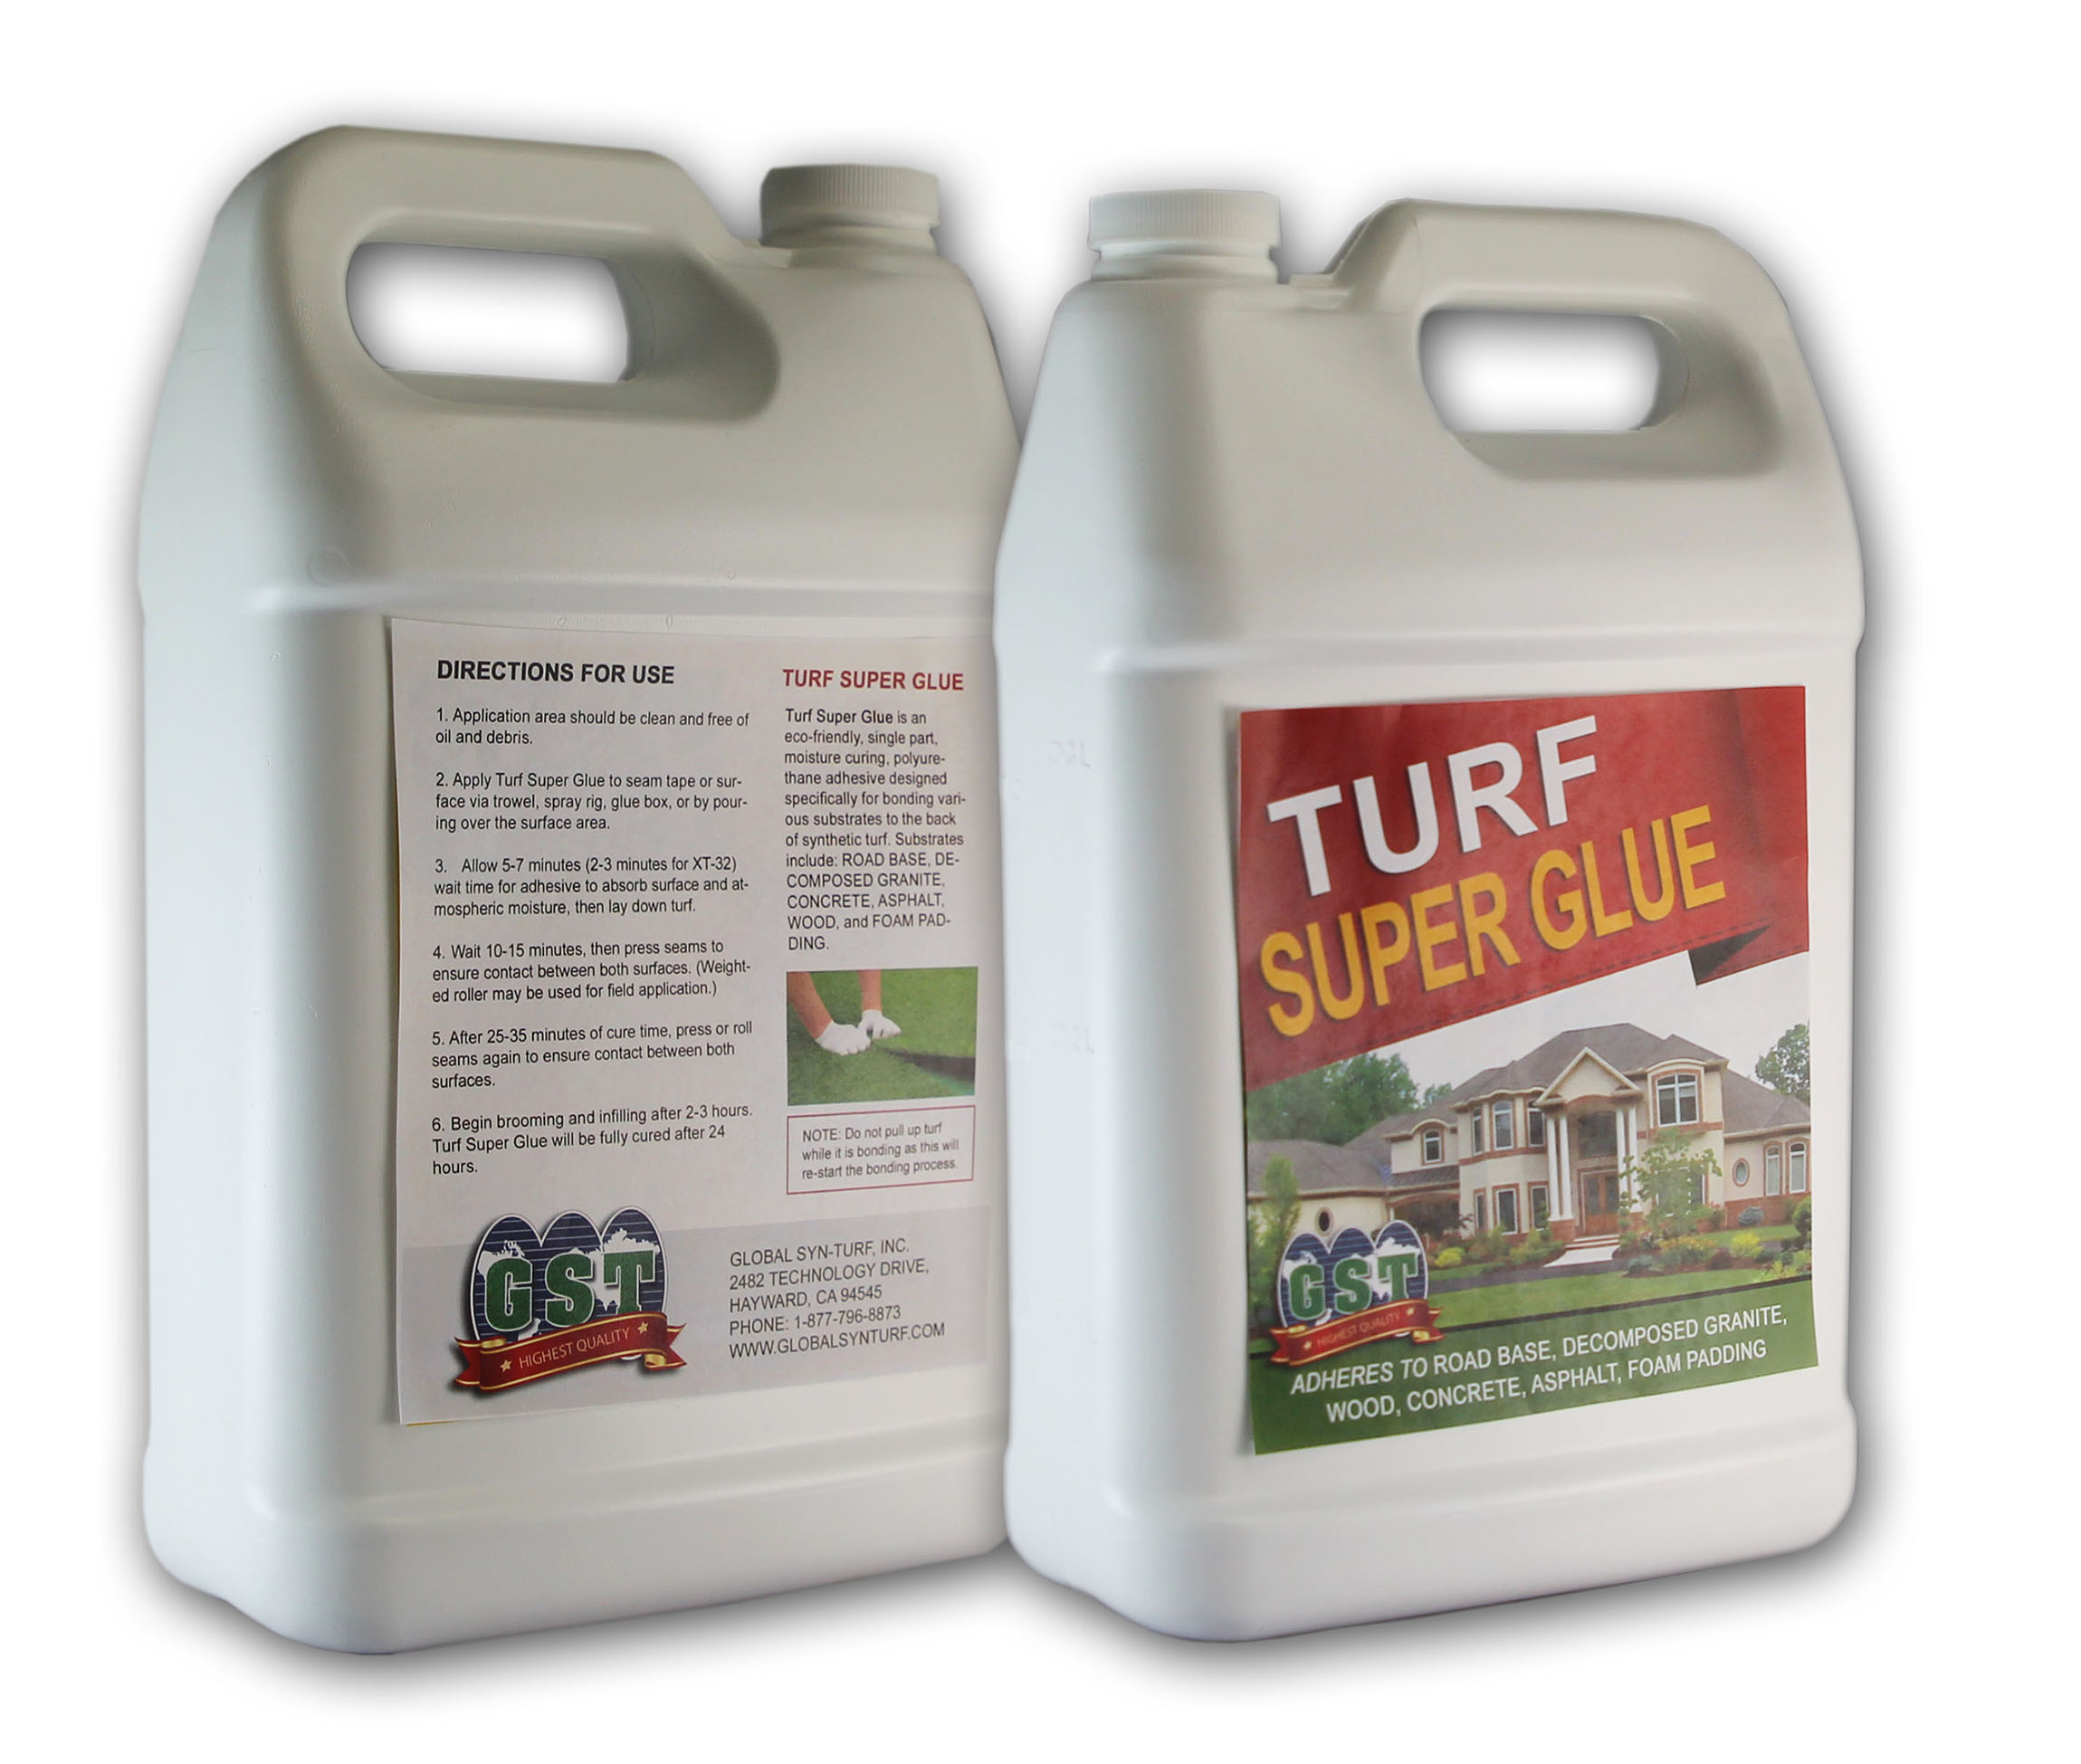 Global Syn Turf Launches New Eco Friendly Products To Help